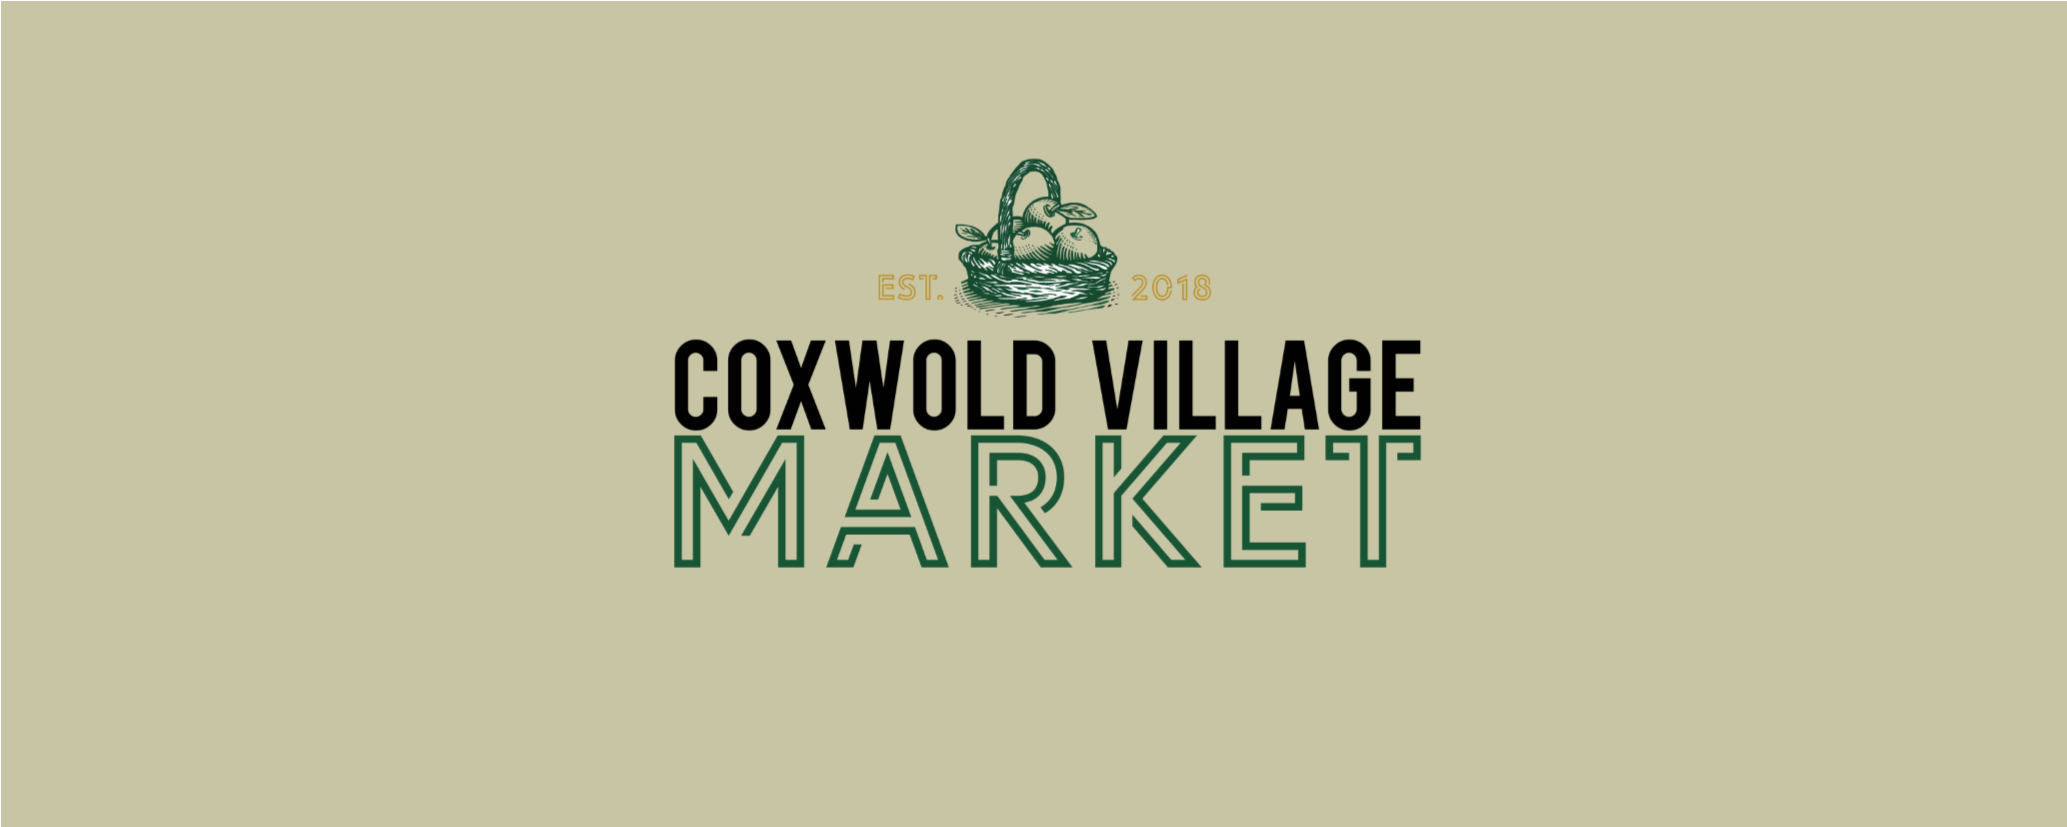 Coxwold Village Market - July 2019